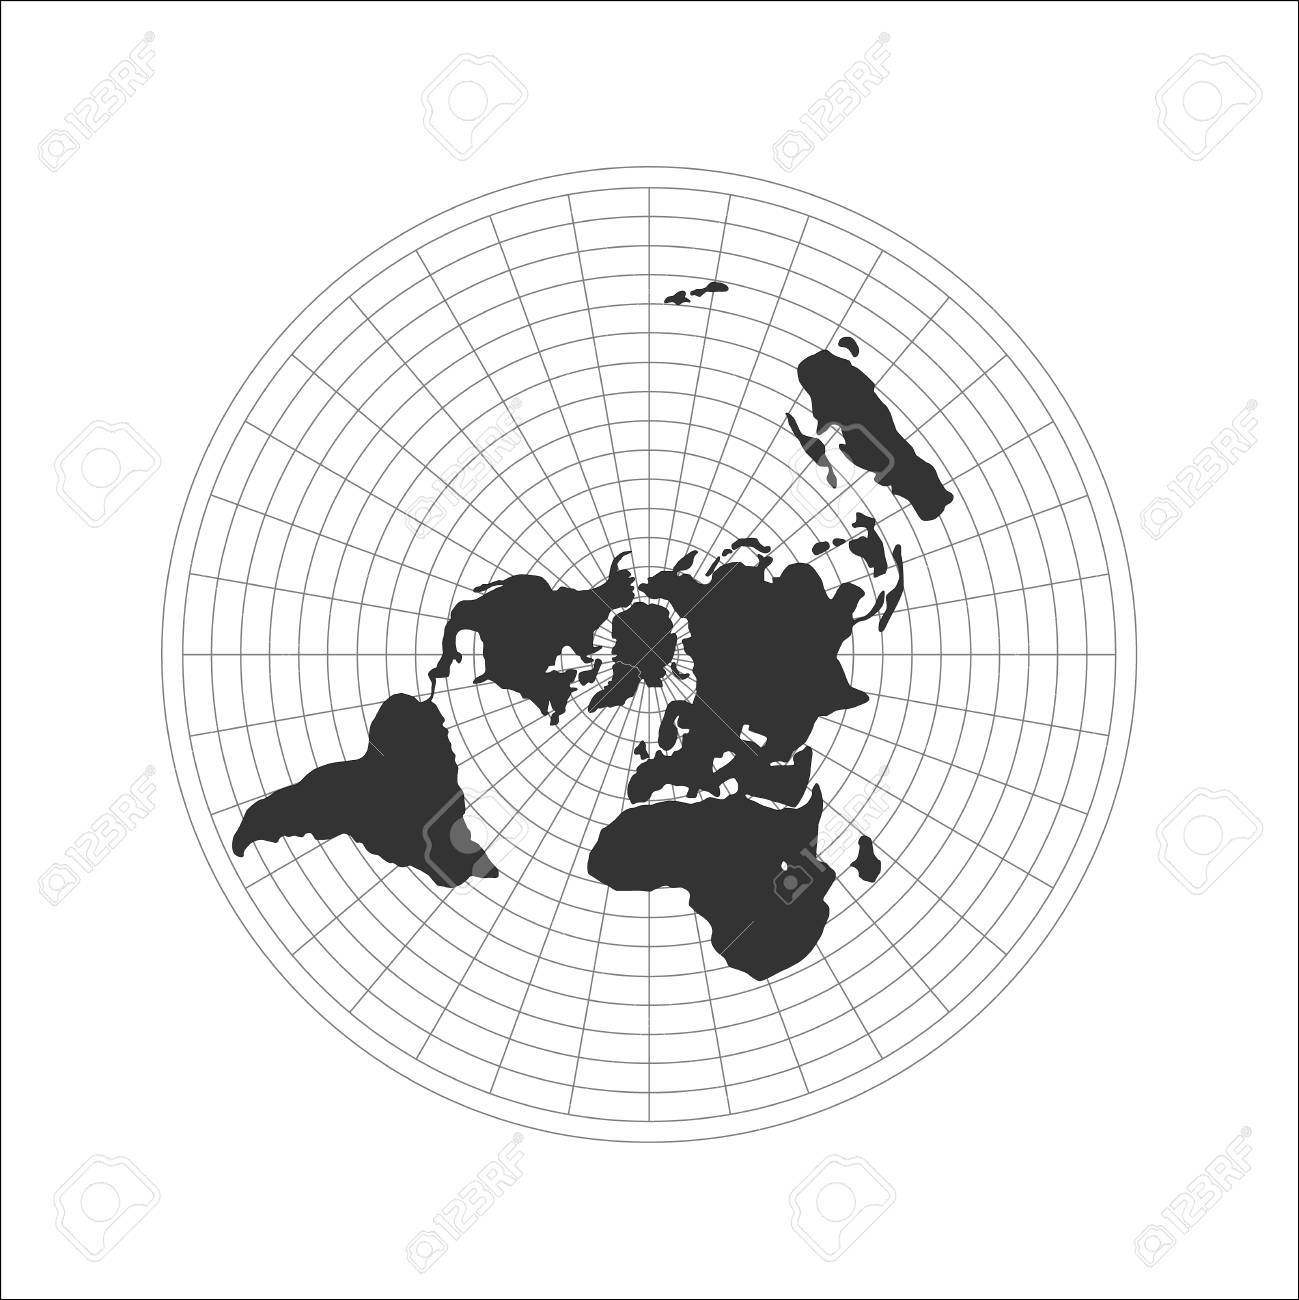 Flat earth map logo vector illustration royalty free cliparts flat earth map logo vector illustration stock vector 81294576 gumiabroncs Images